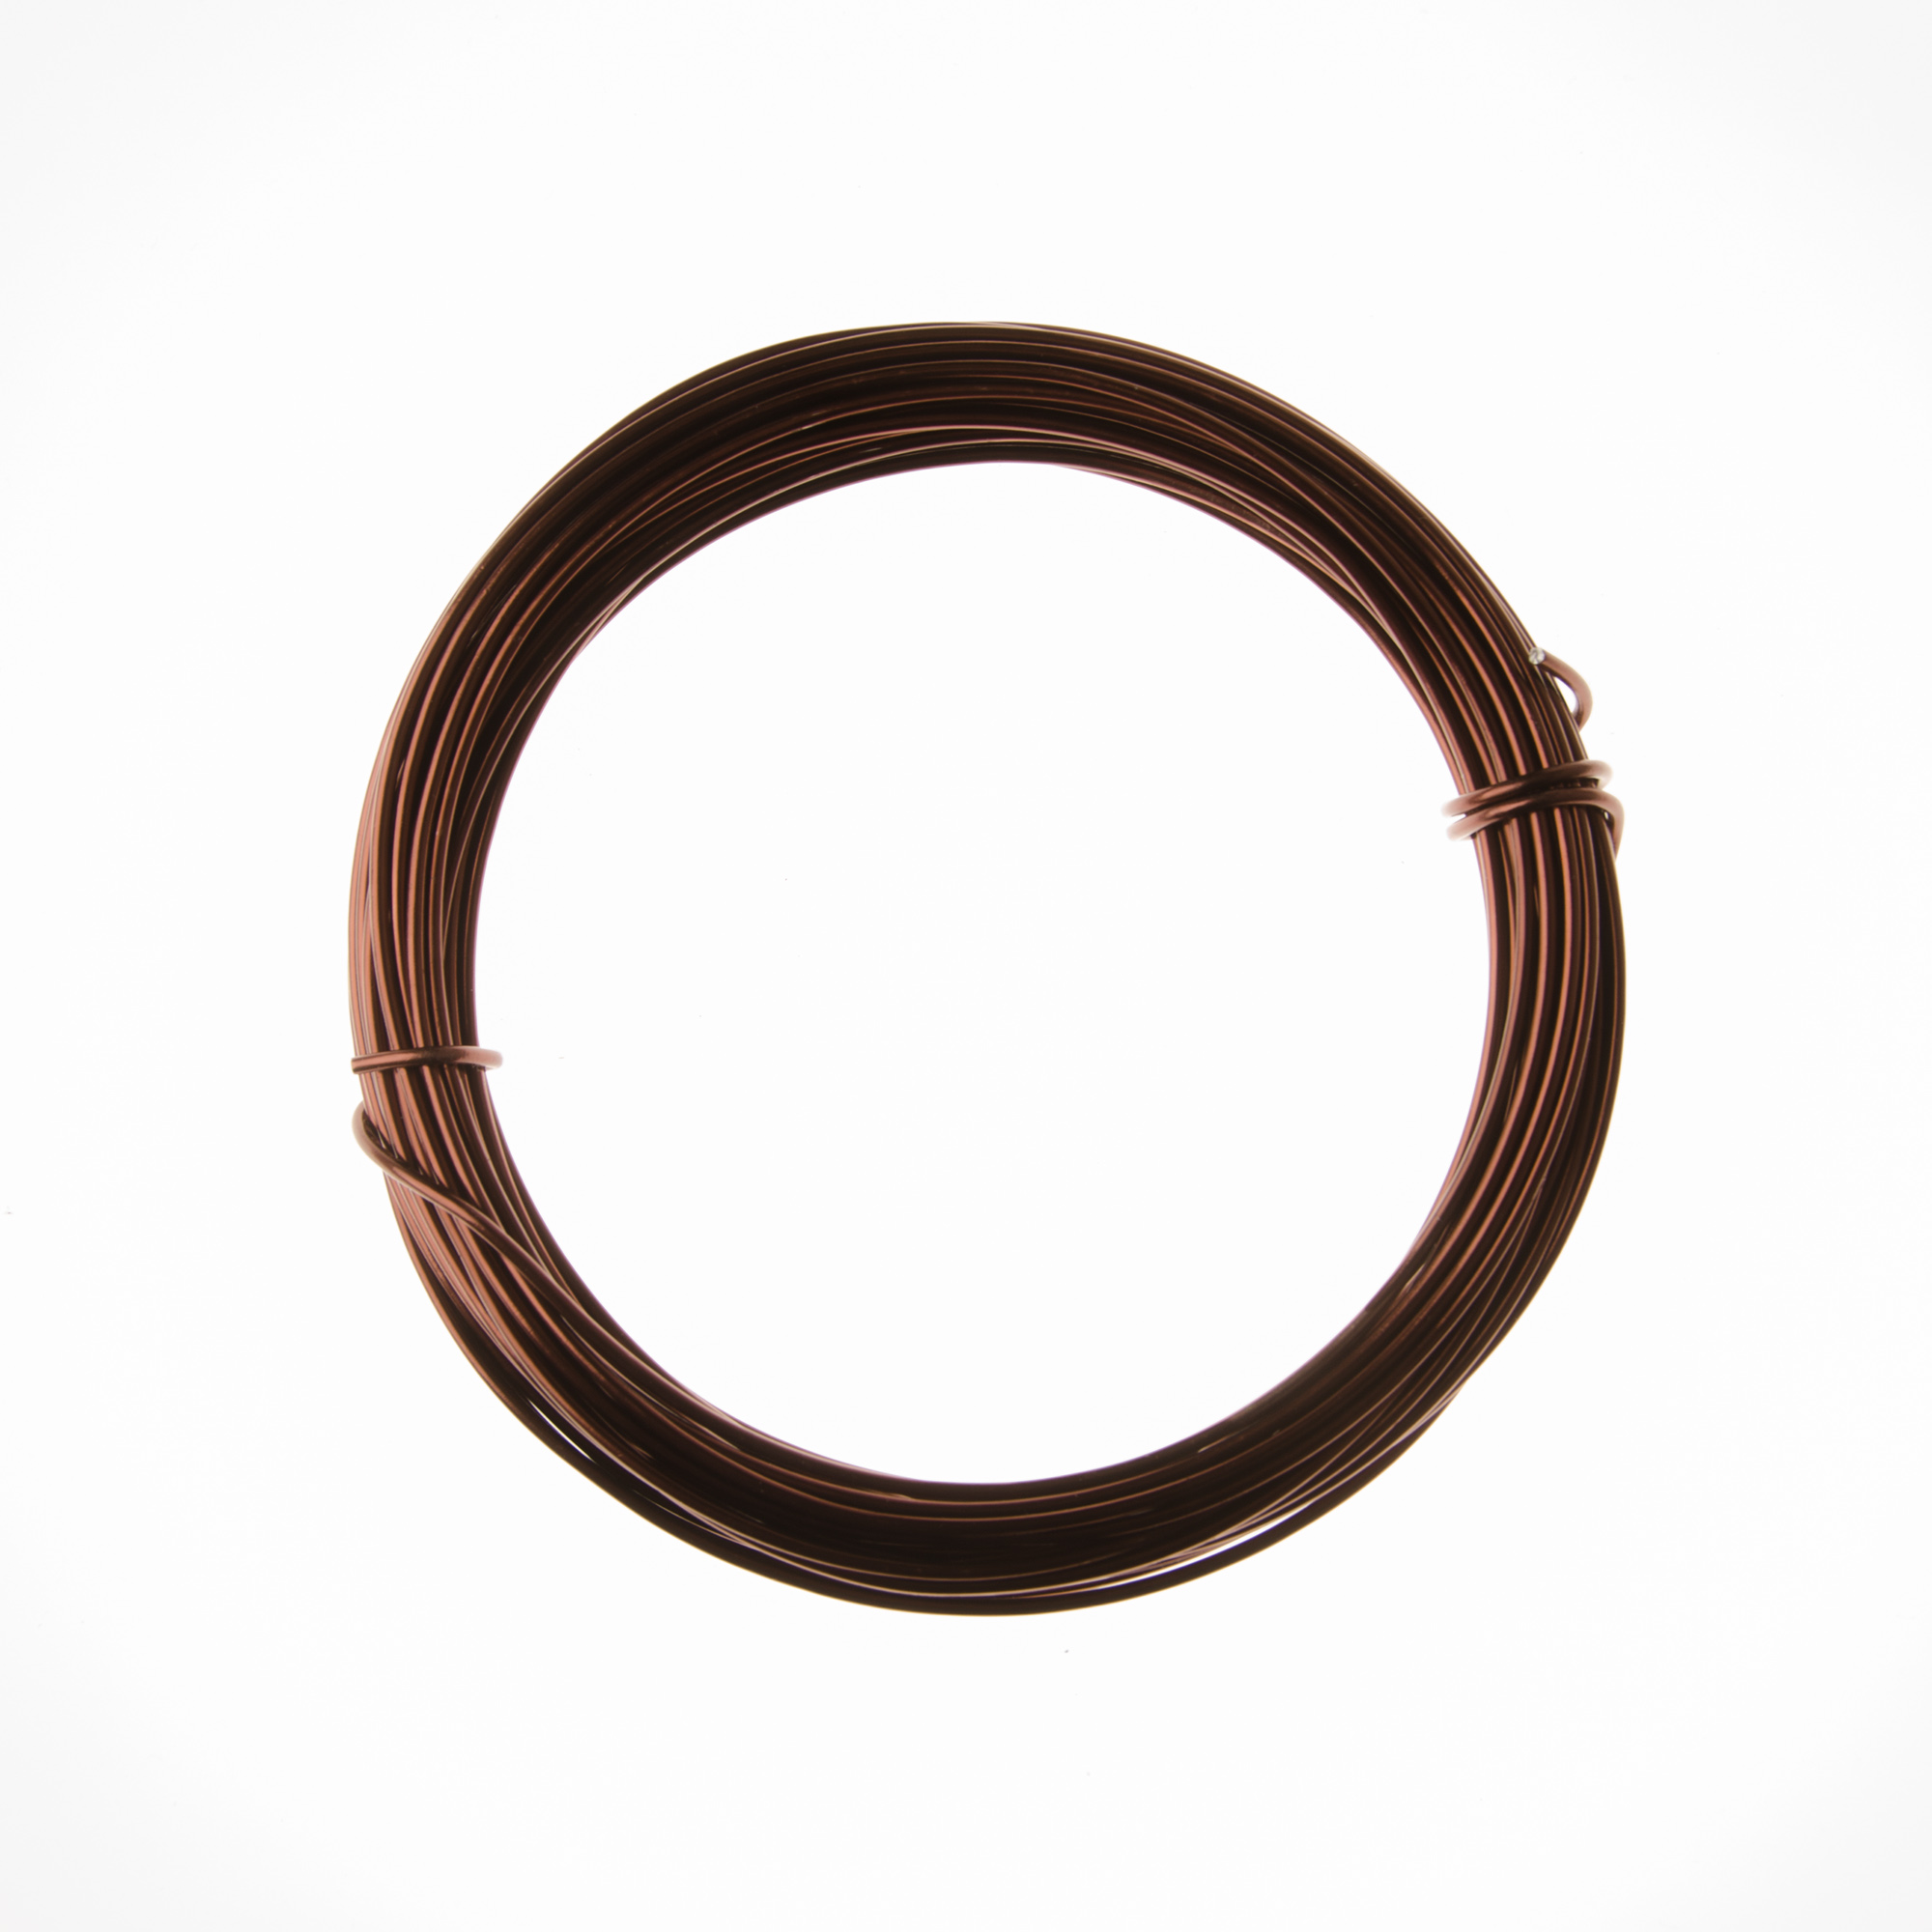 12 Gauge Brown Anodized Aluminum Wire - 39ft: Wire Jewelry | Wire ...